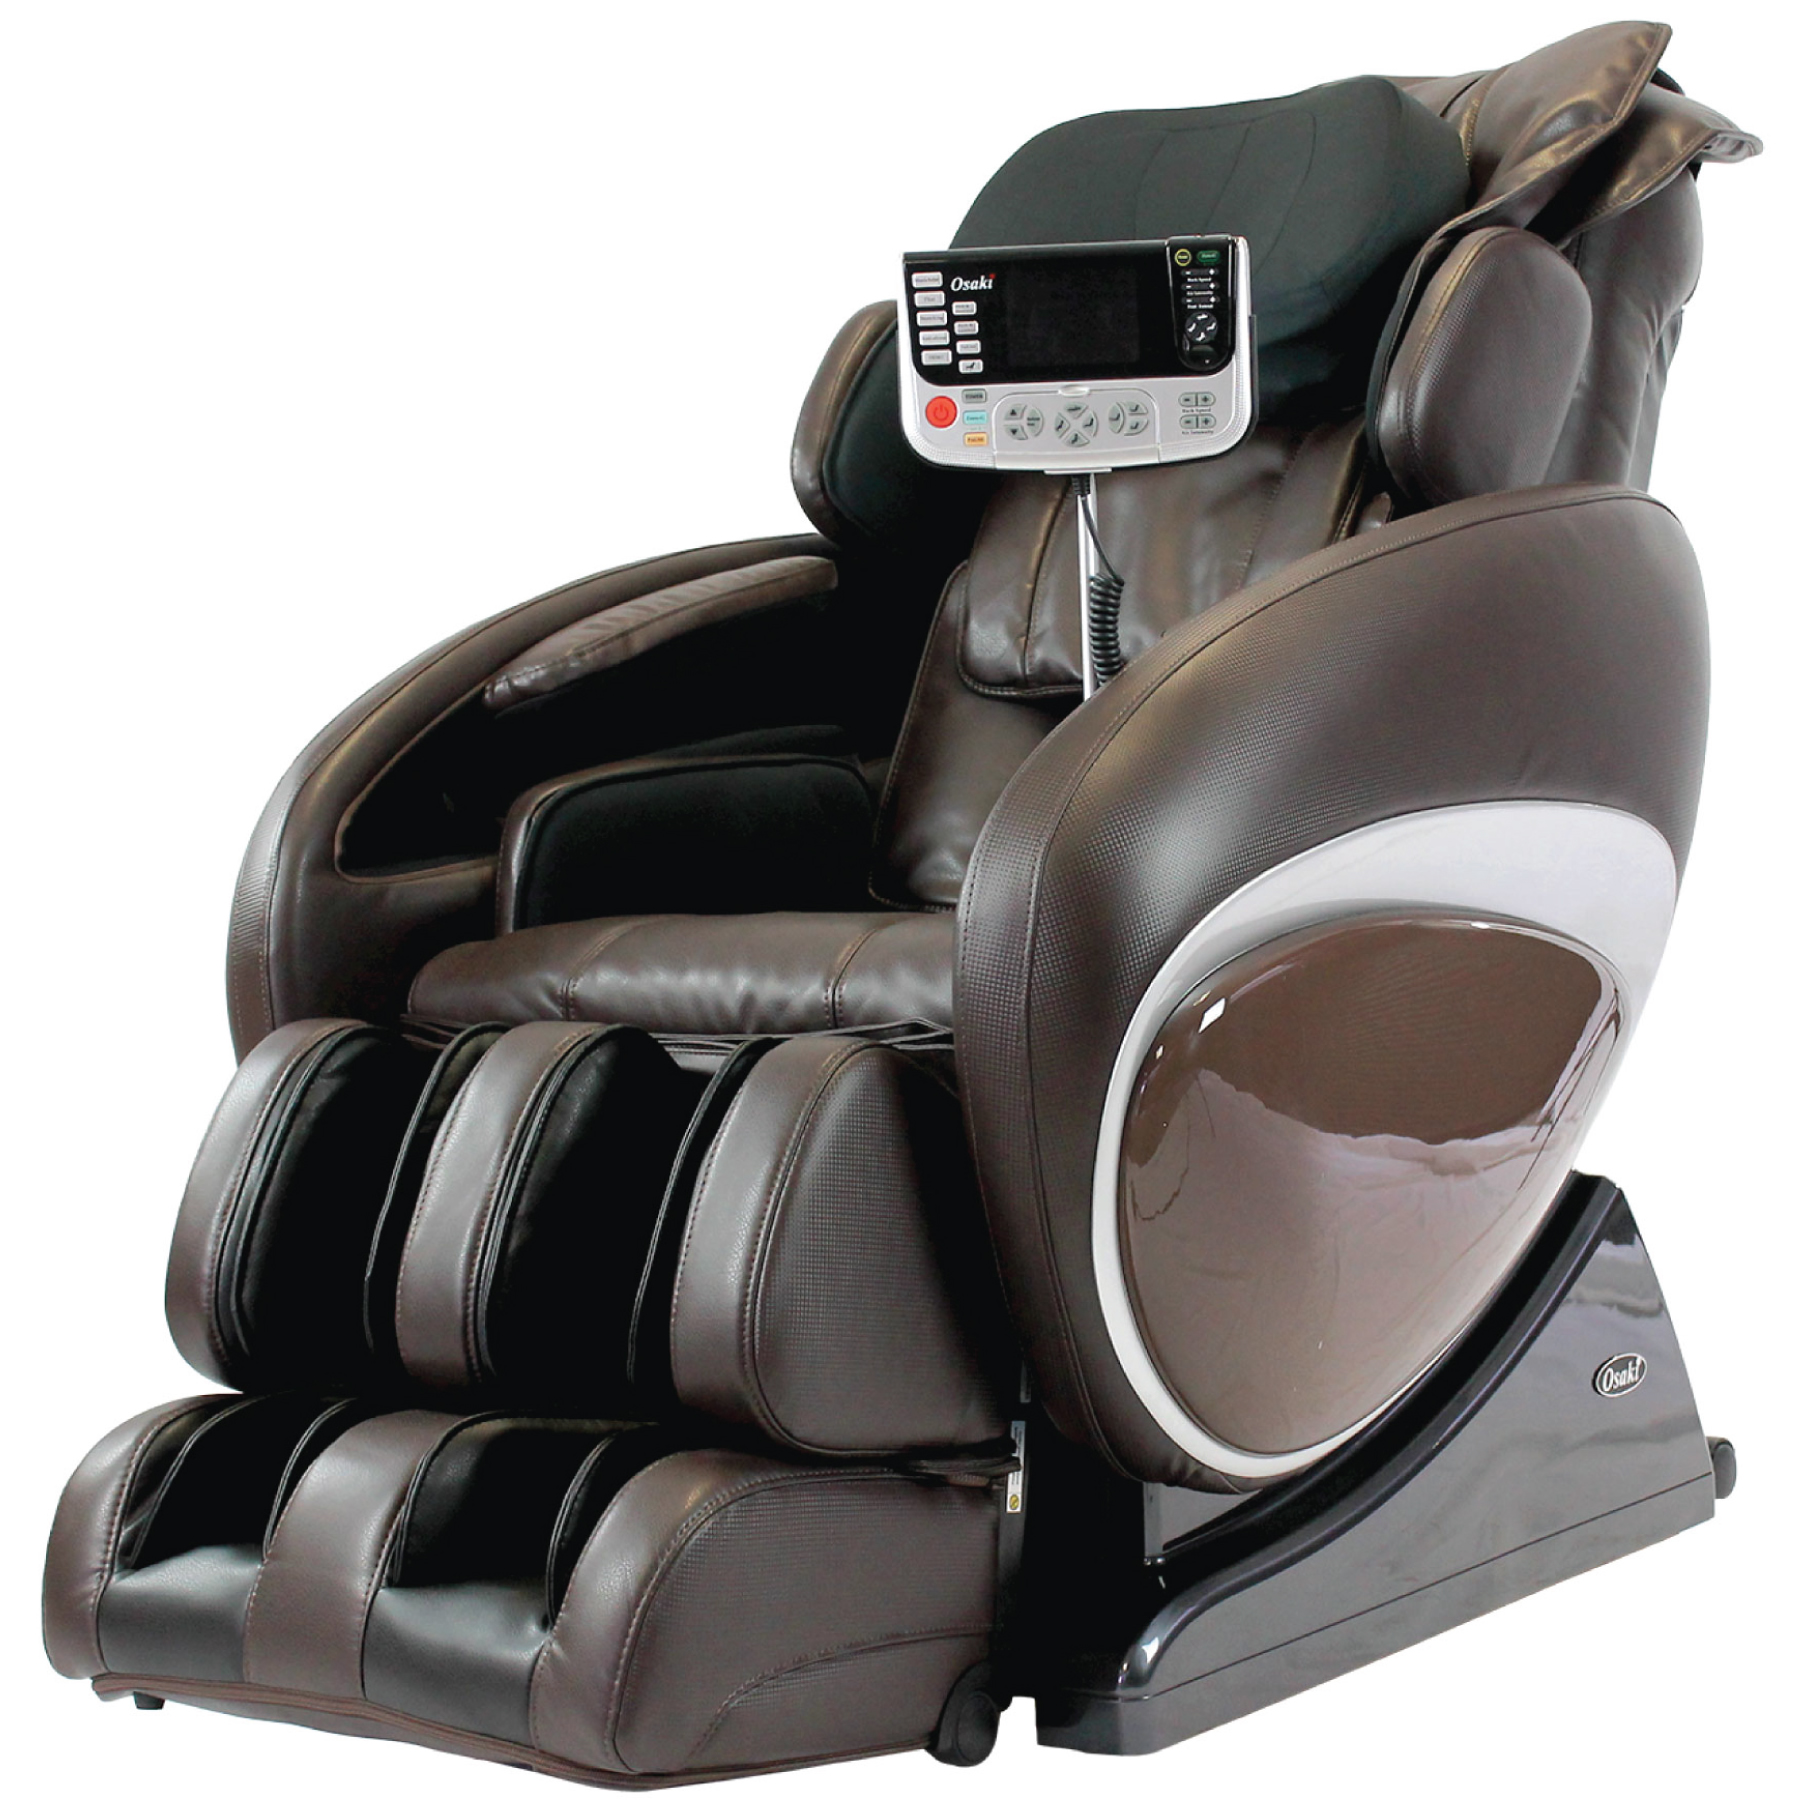 Osaki OS-4000T Zero Gravity Massage Chair, Brown, Compute...